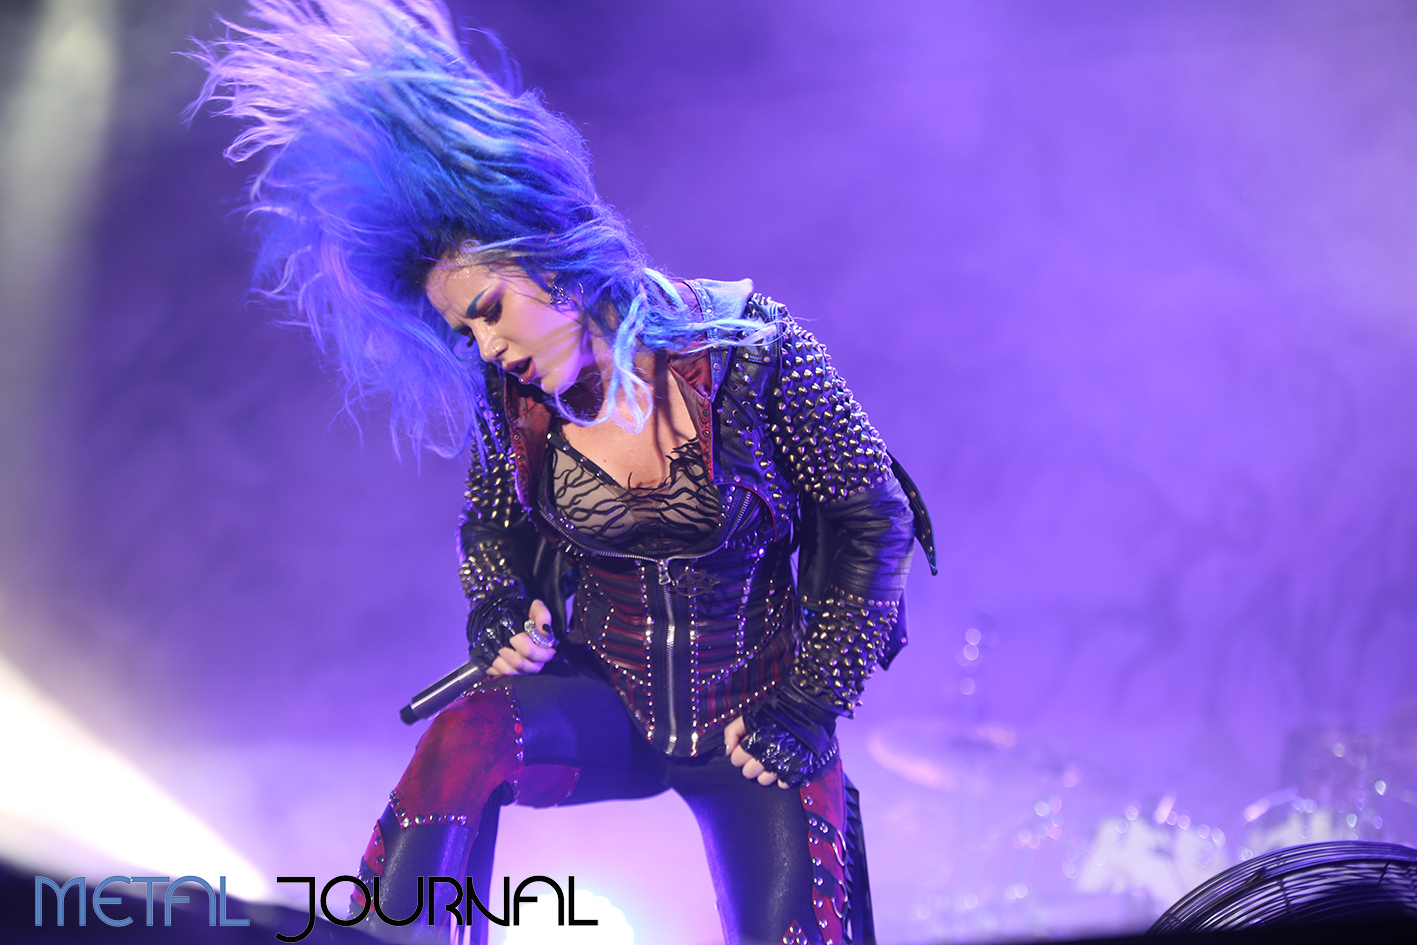 arch enemy - metal journal rock fest barcelona 2019 pic 1